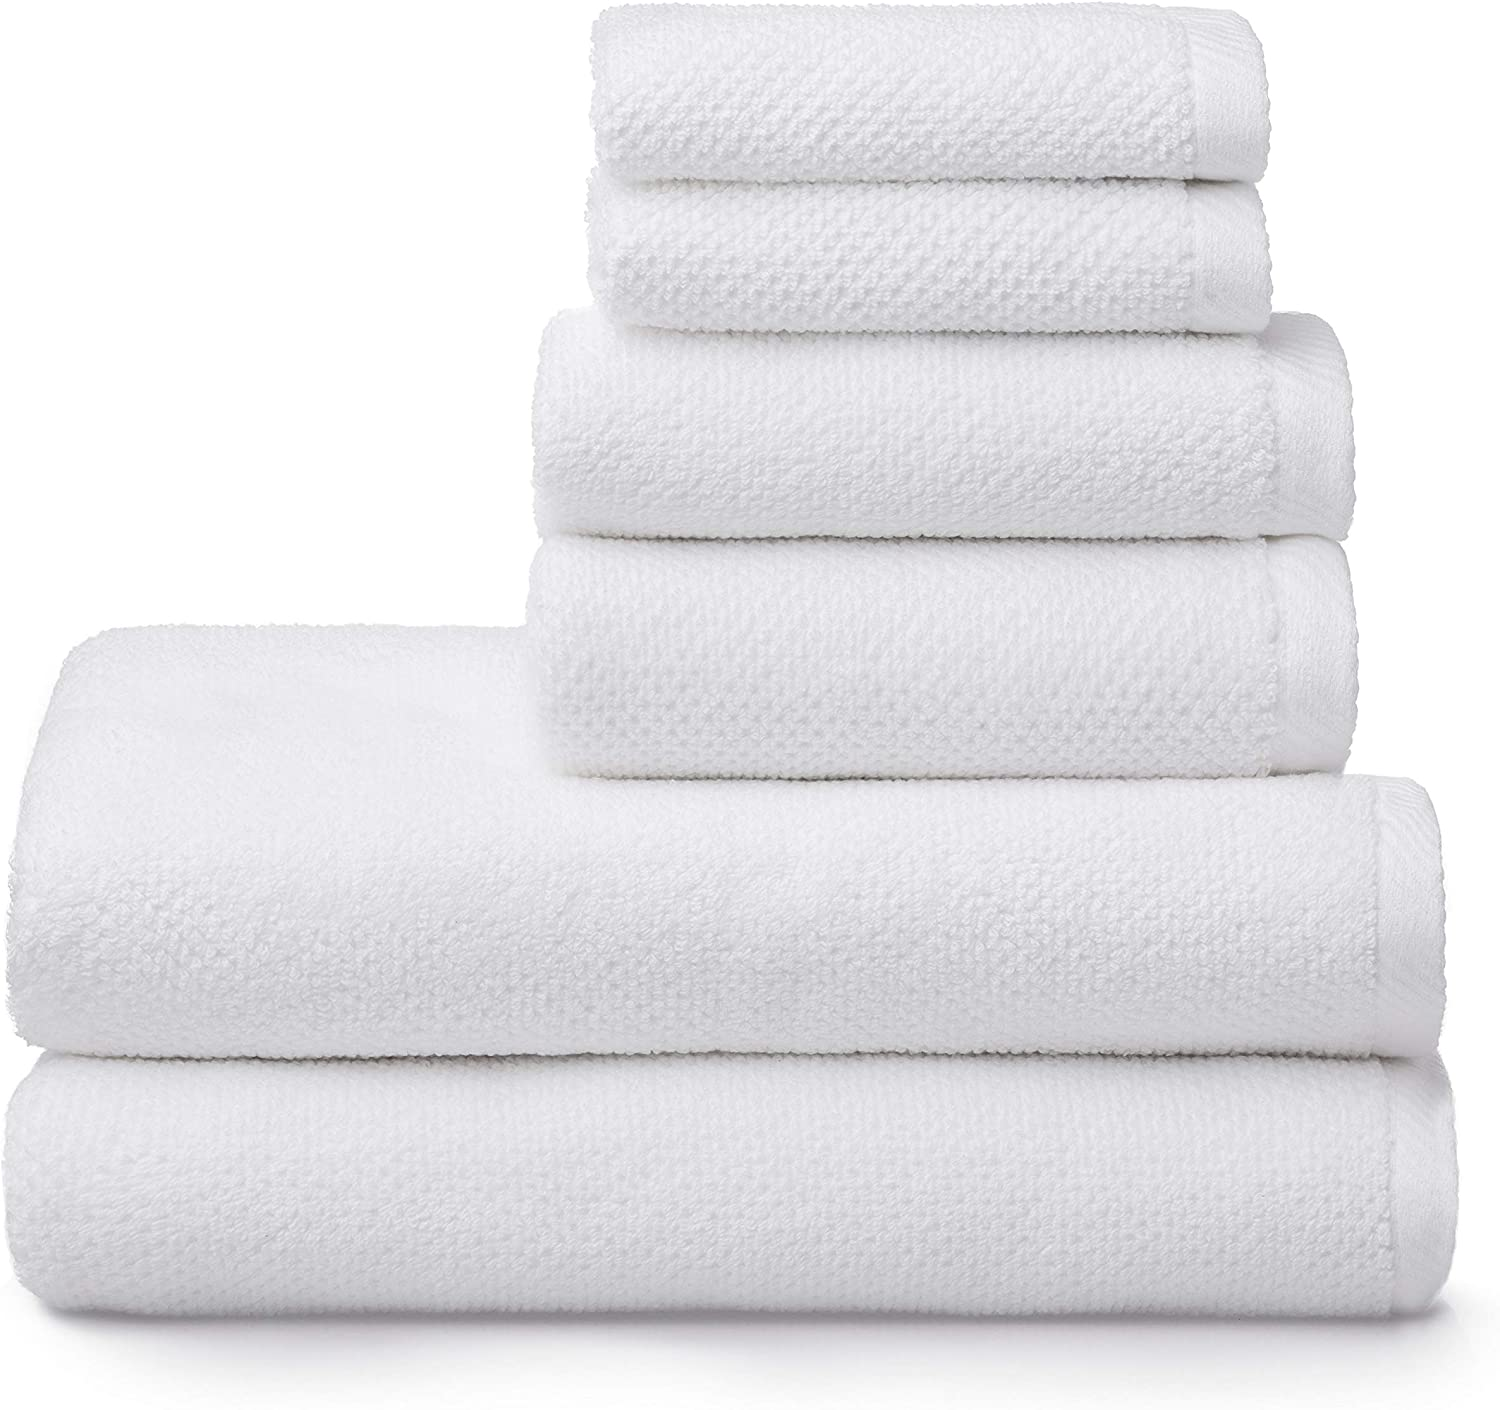 """100/% COTTON MIESTER IVORY WHITE BATH TOWEL SET OF 5 TOWELS 28/"""" X 54/"""" NEW"""